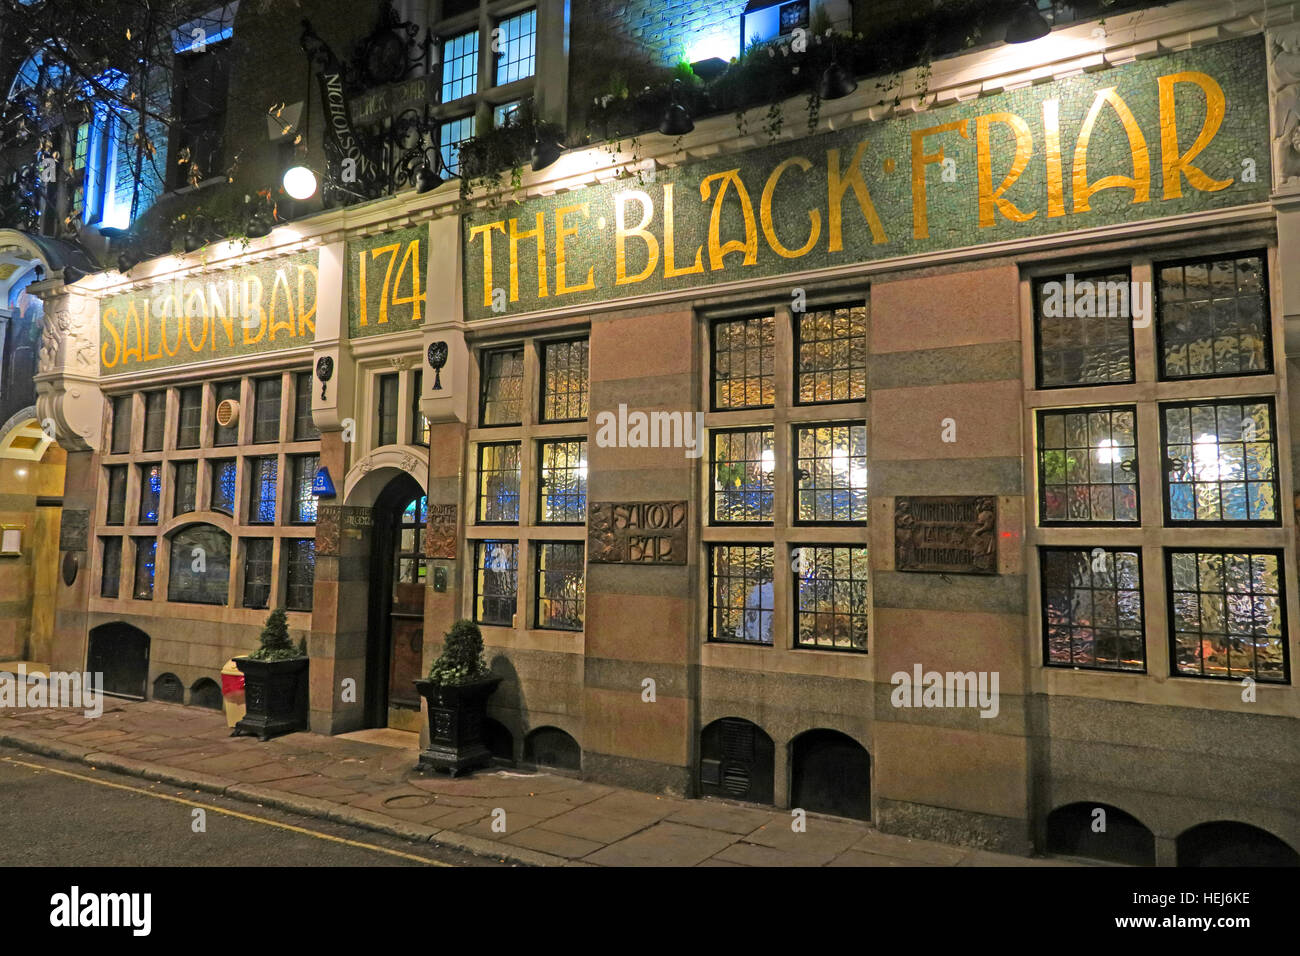 City Centre,City,Centre,dusk,pub,pubs,bars,bar,classic,CAMRA,real,ale,realale,real ale,art,deco,artdeco,art-deco,The Black Friar,at,night,dusk,drinking,beer,beers,gin,palace,gin palace,174,dusk,Henry Poole,Herbert Fuller-Clark,Art Nouveau,GoTonySmith,@HotpixUK,Tony,Smith,UK,GB,Great,Britain,United,Kingdom,English,British,England,London,Greater,problem,with,problem with,issue with,LDN,City,Centre,cities,Urban,Urbanist,town,infrastructure,transport,tour,tourism,tourists,urban,attraction,attractions,pubs,bars,of,London,classic,tourist,attraction,travel,vacation,Buy Pictures of,Buy Images Of,Images of,Stock Images,Tony Smith,United Kingdom,Great Britain,Greater London,British Isles,City Centre,Pubs Of London,must see